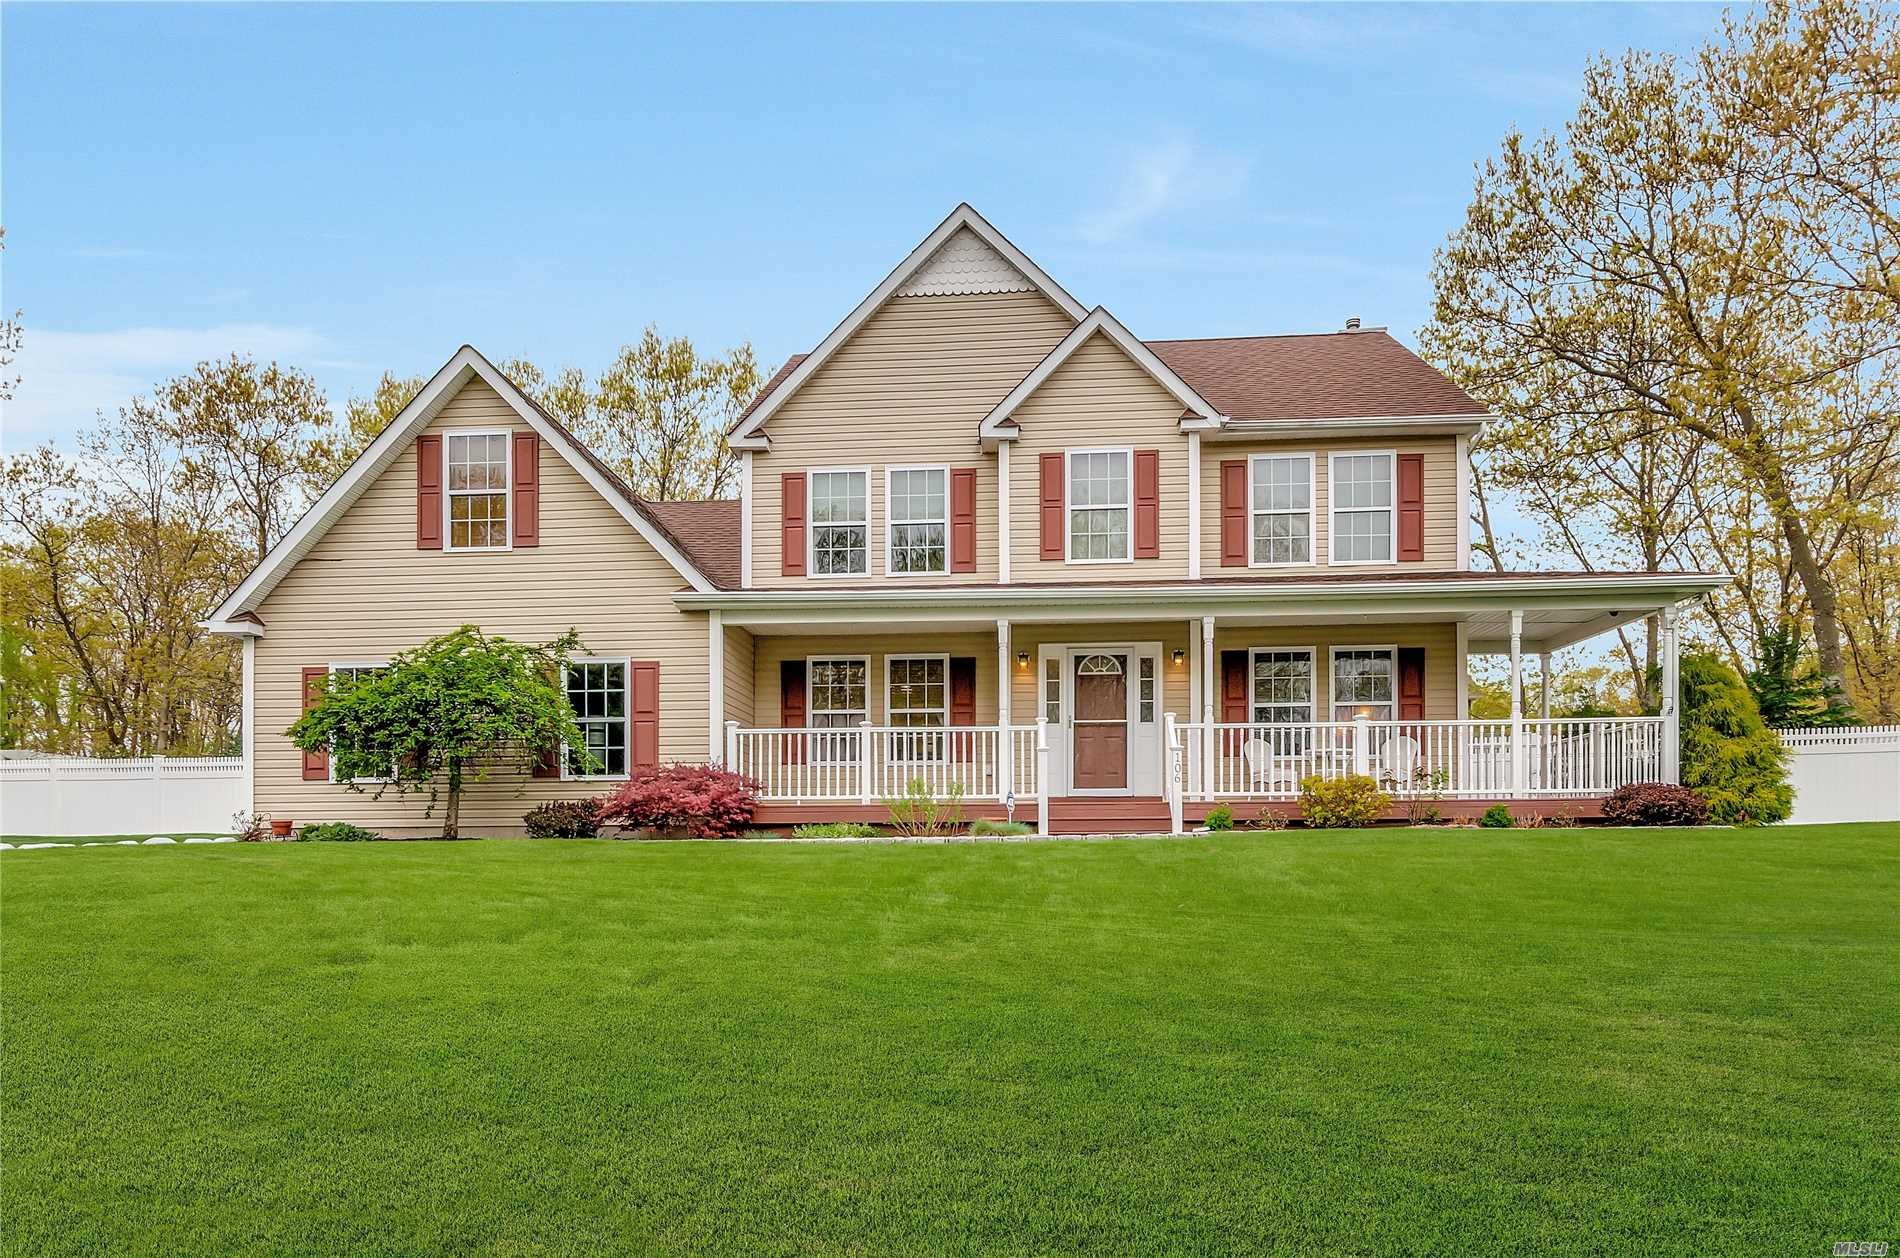 STUNNING VICTORIAN HOME WITH ROCKING CHAIR PORCH ! FEATURES NEW KITCHEN W/GRANITE COUNTERS-OVERHEAD COLORED CABINET LIGHTING.OAK FLOORS THRU OUT, GAS FPLCE, CERAMIC TILE, CAC,  OWNED OUTRIGHT SOLAR PANELS, VINYL FULLY FENCED YARD. CUL DE SAC SETTING. THIS HOME IS PERFECTION! MILLER PLACE SD